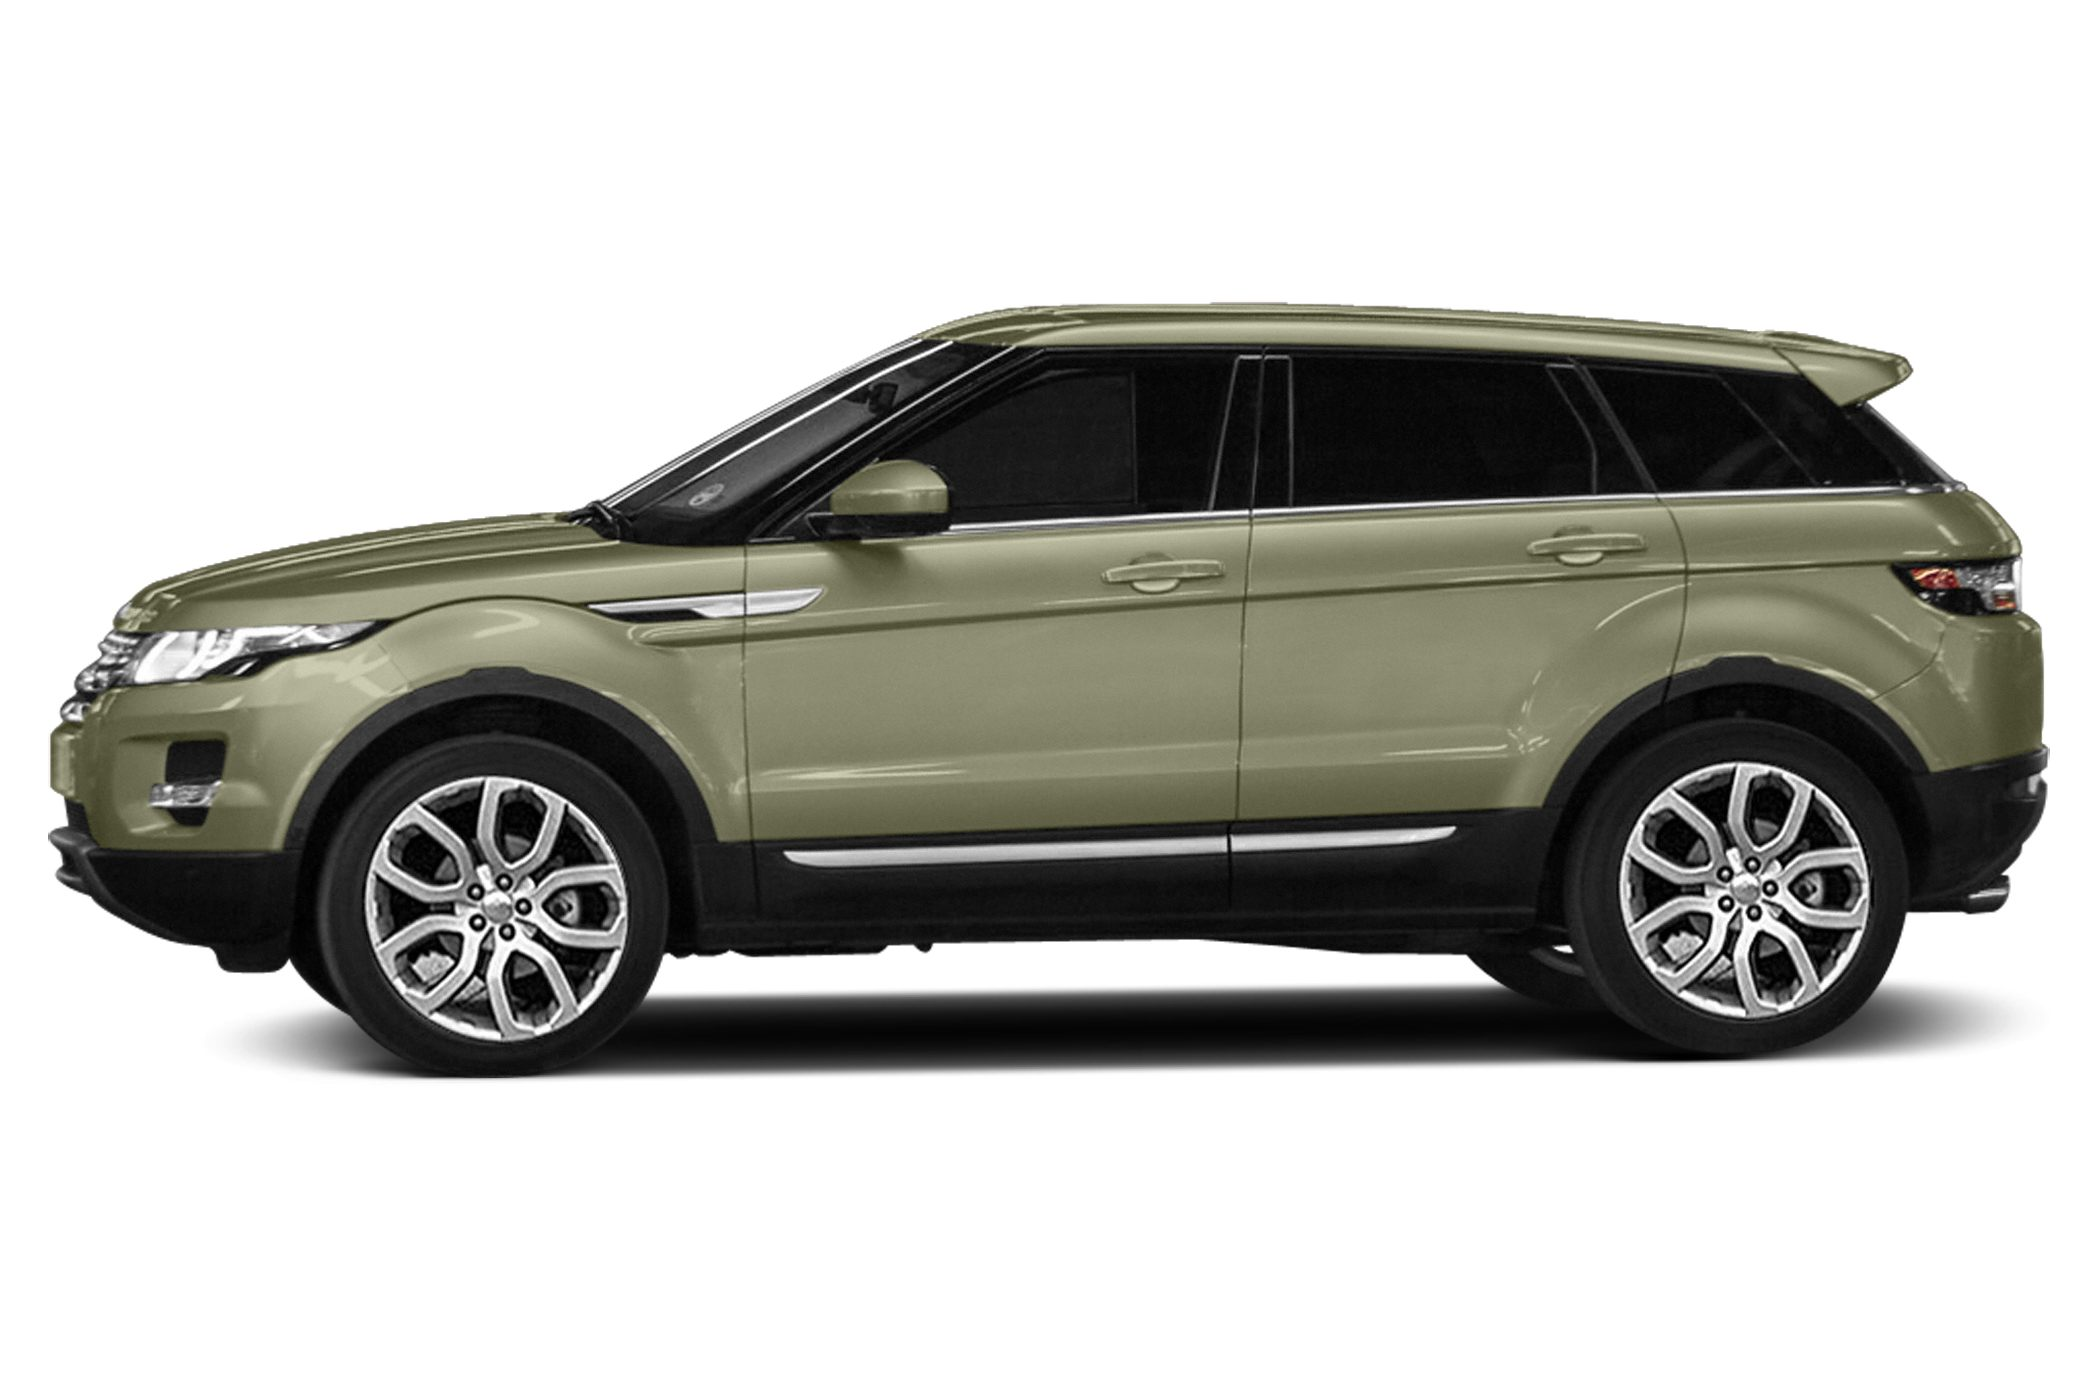 New 2014 Land Rover Range Rover Evoque Price, Photos, Reviews free image download